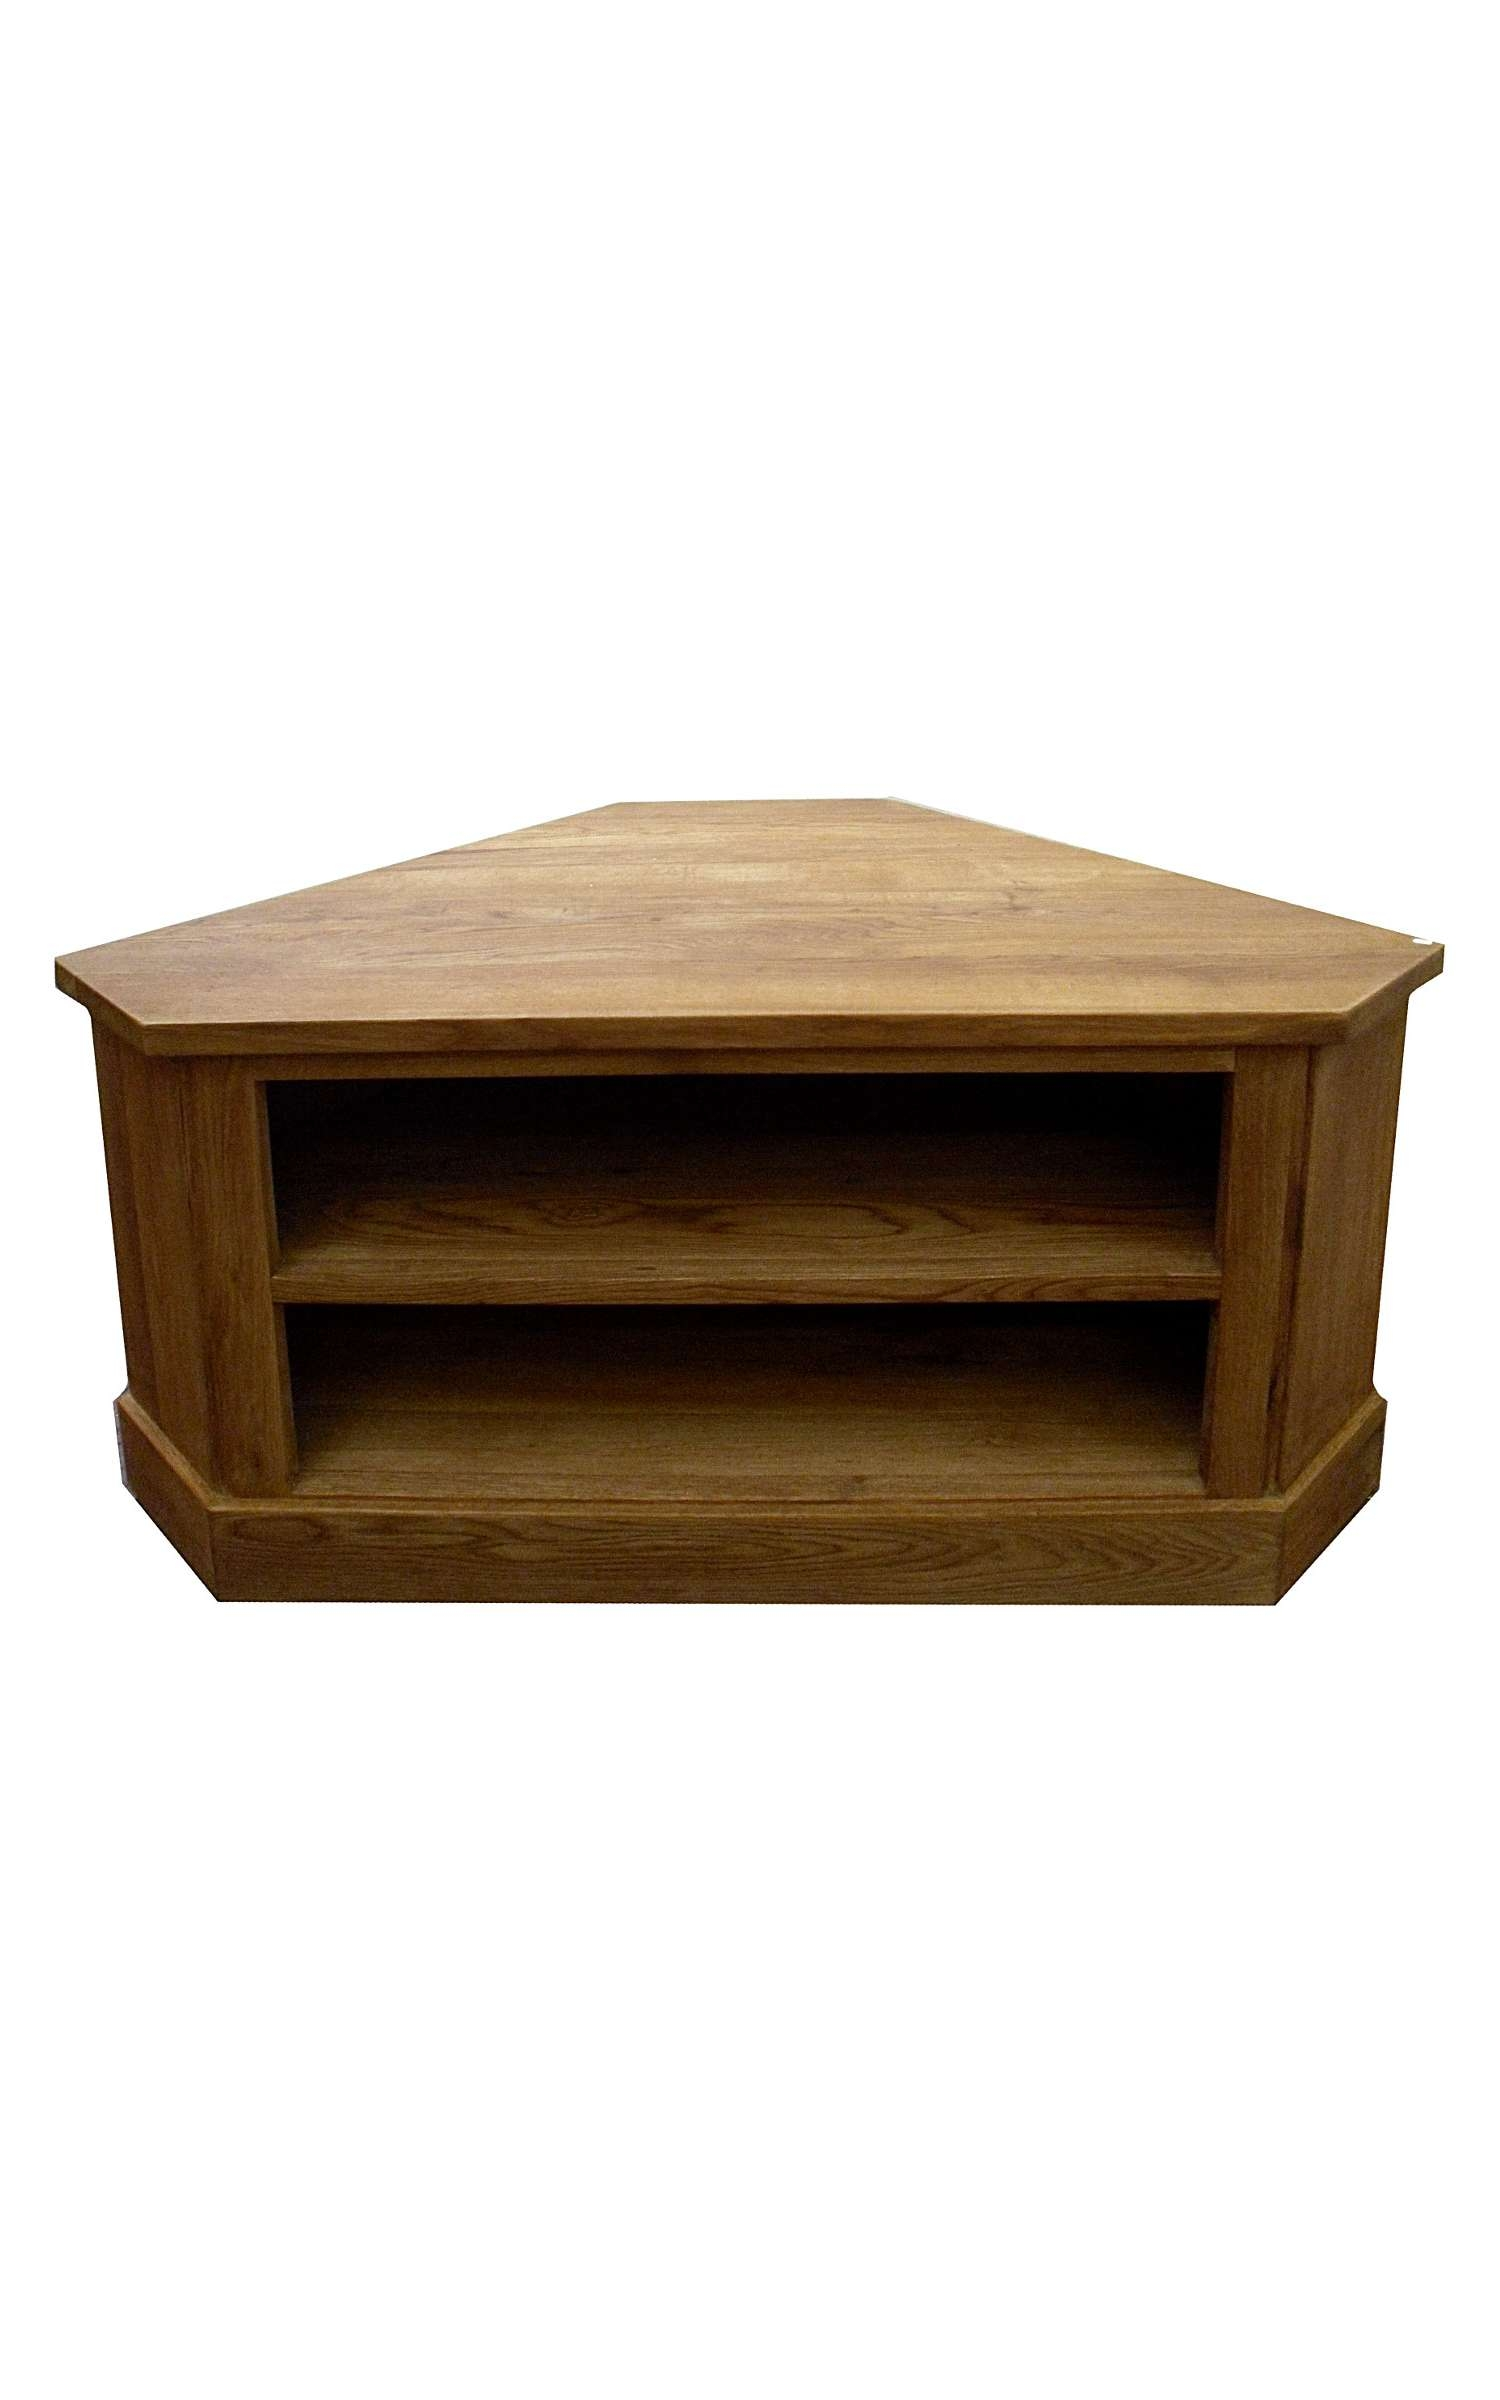 Small Wooden Corner Tv Stand Console Cabinet With Fireplace And Inside Small Corner Tv Cabinets (View 12 of 20)